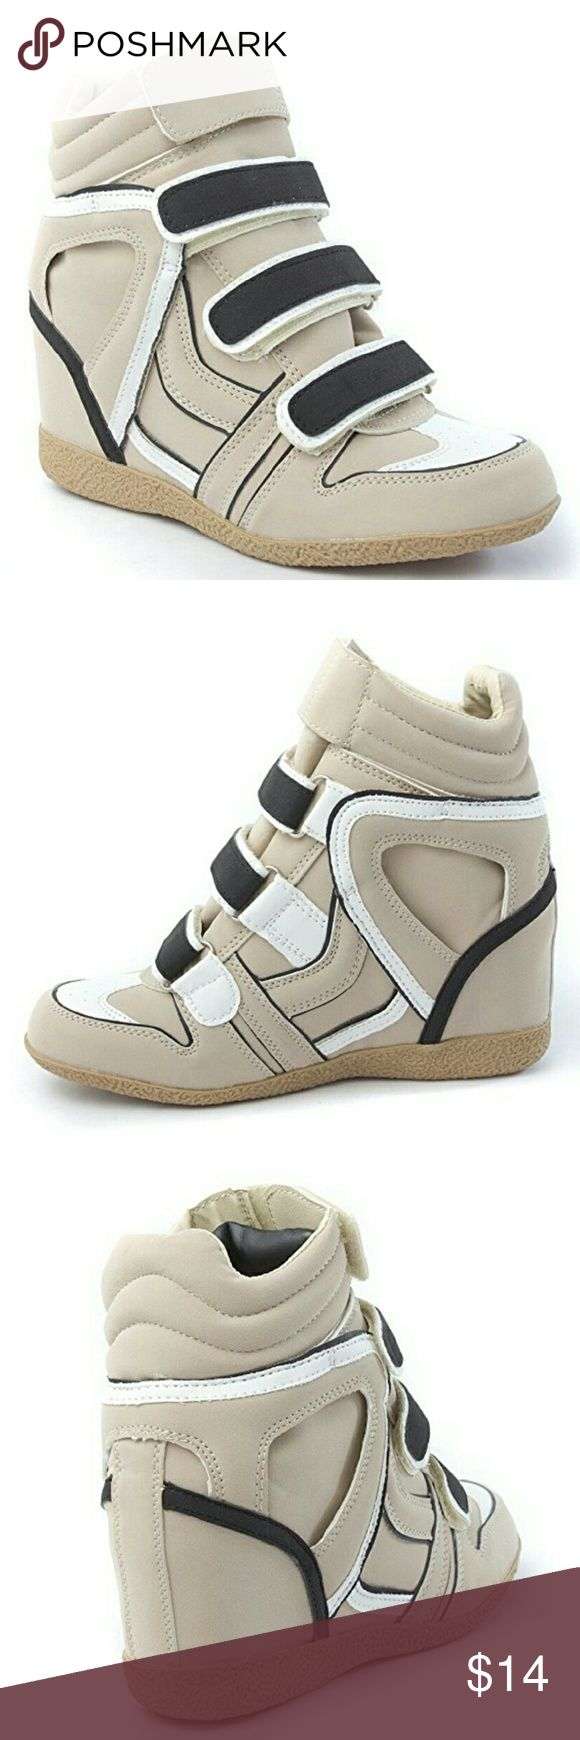 Nude Hidden Wedge Sneaker Fashionable nude, high heeled, wedge sneaker with navy blue straps. Fun and stylish sneakers that combine high heels or wedges with the en-trend sneaker. Neutral colors are always my go-to color when it comes to style. Stay comfortable and fresh in these cool sneakers. Like New, only worn once before. Shoes Sneakers